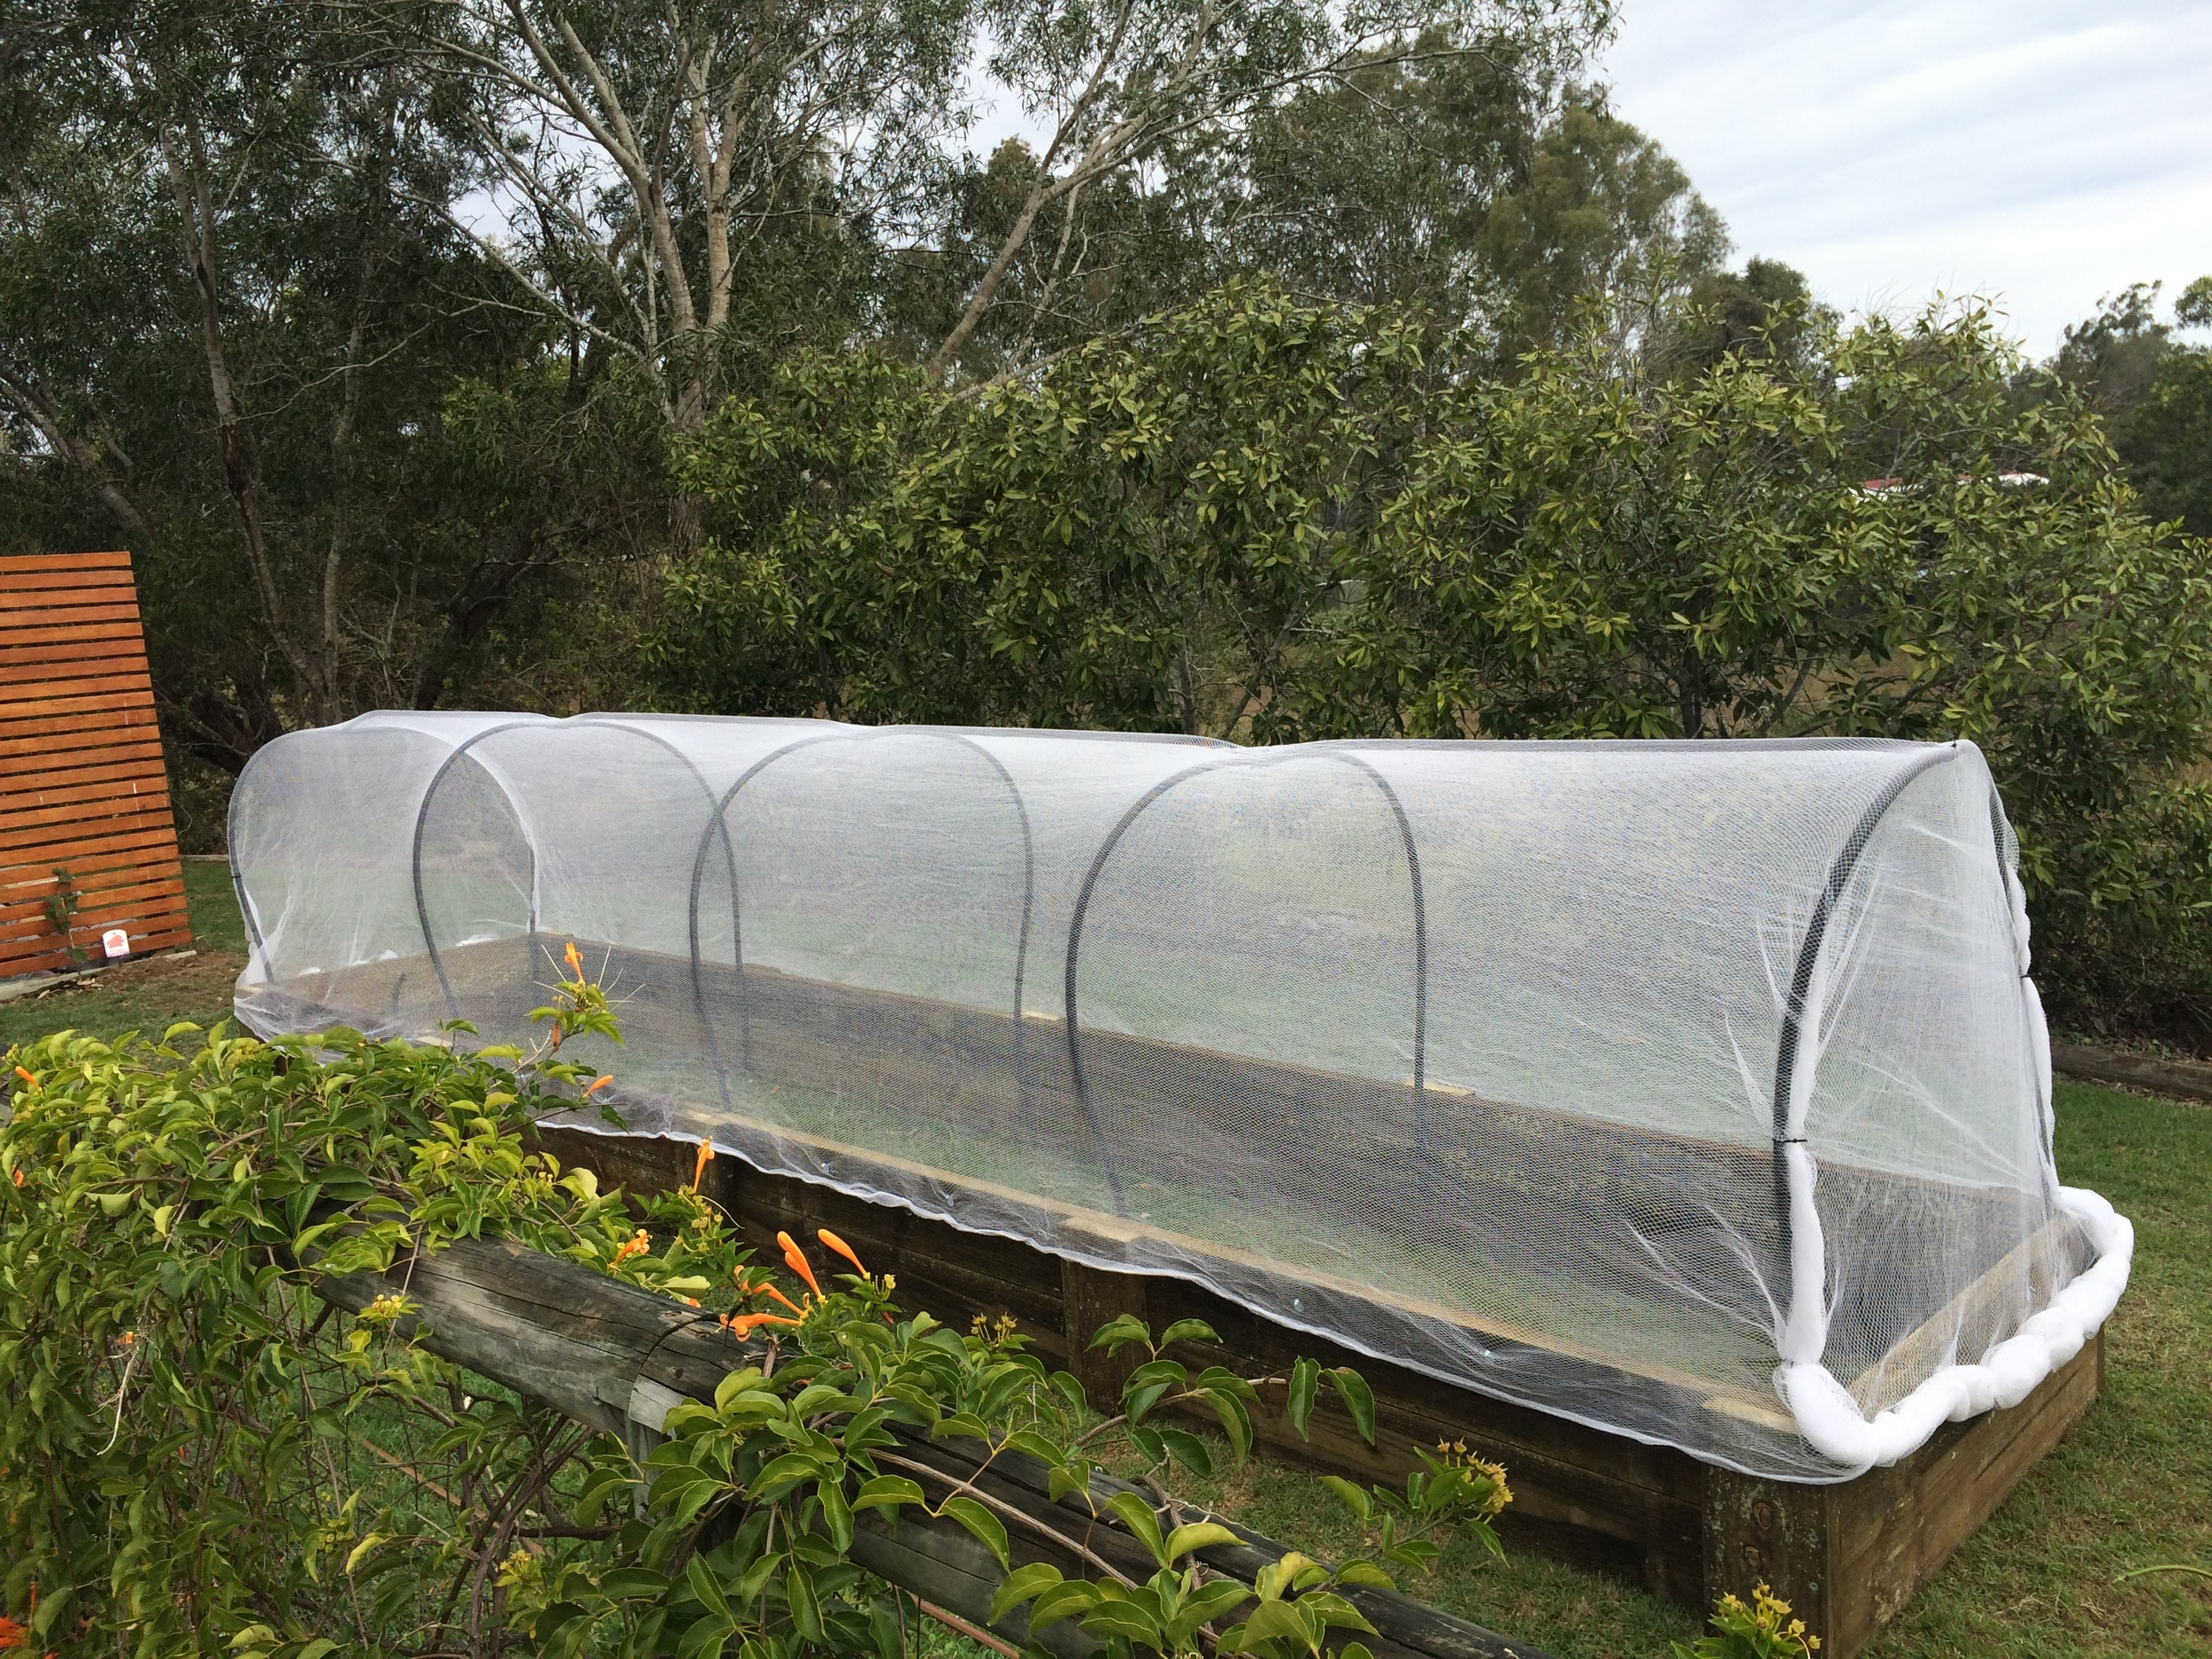 Imagine all the veggies you can grow in here!